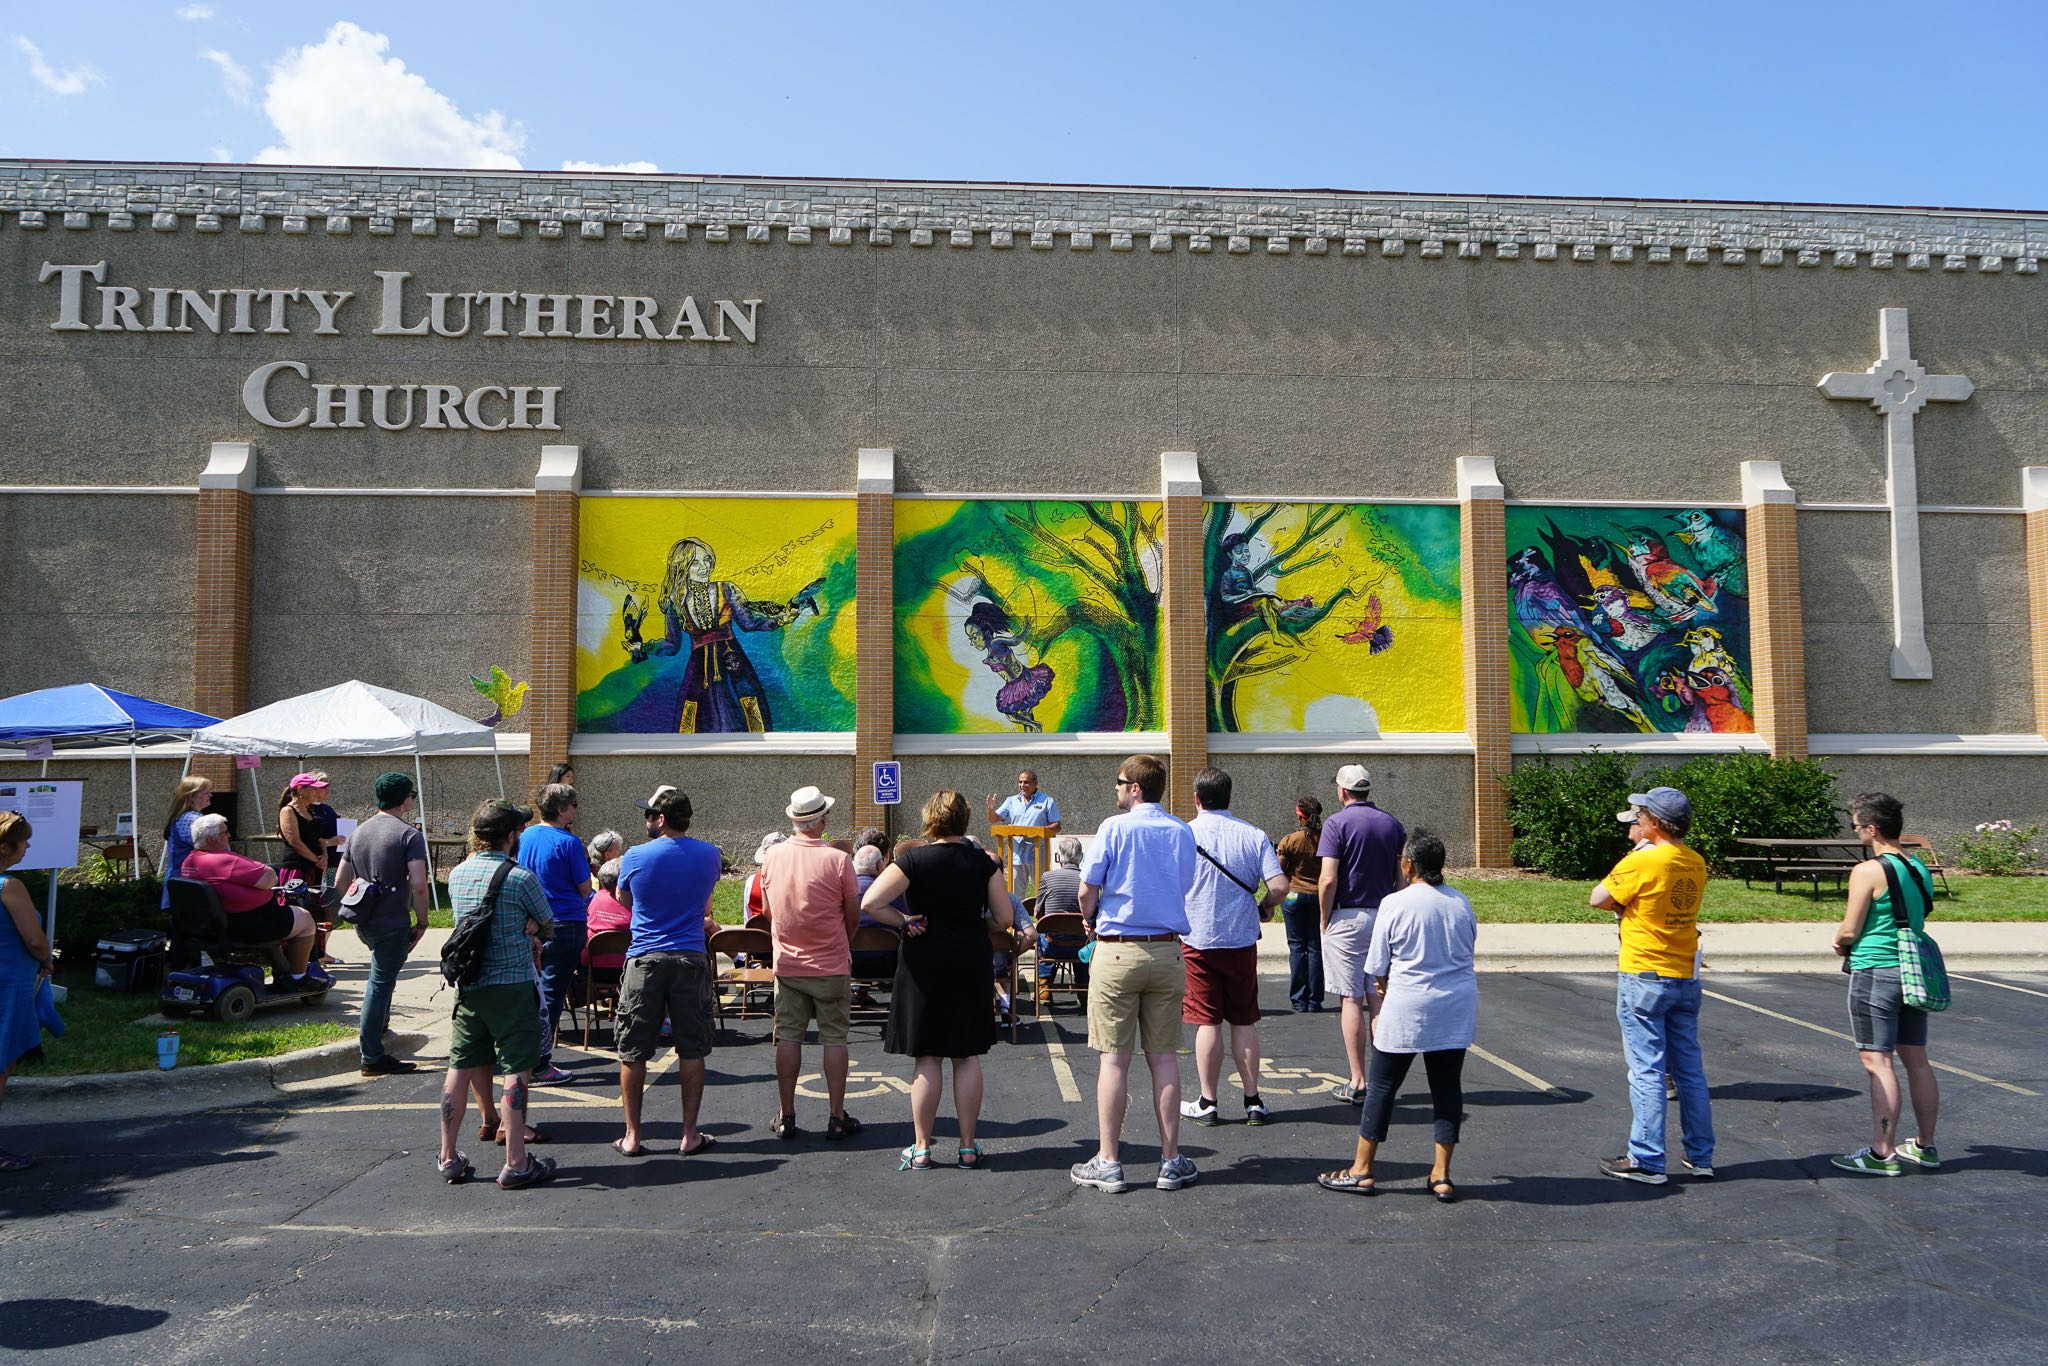 Giant Mural at Lutheran Church with Crowd